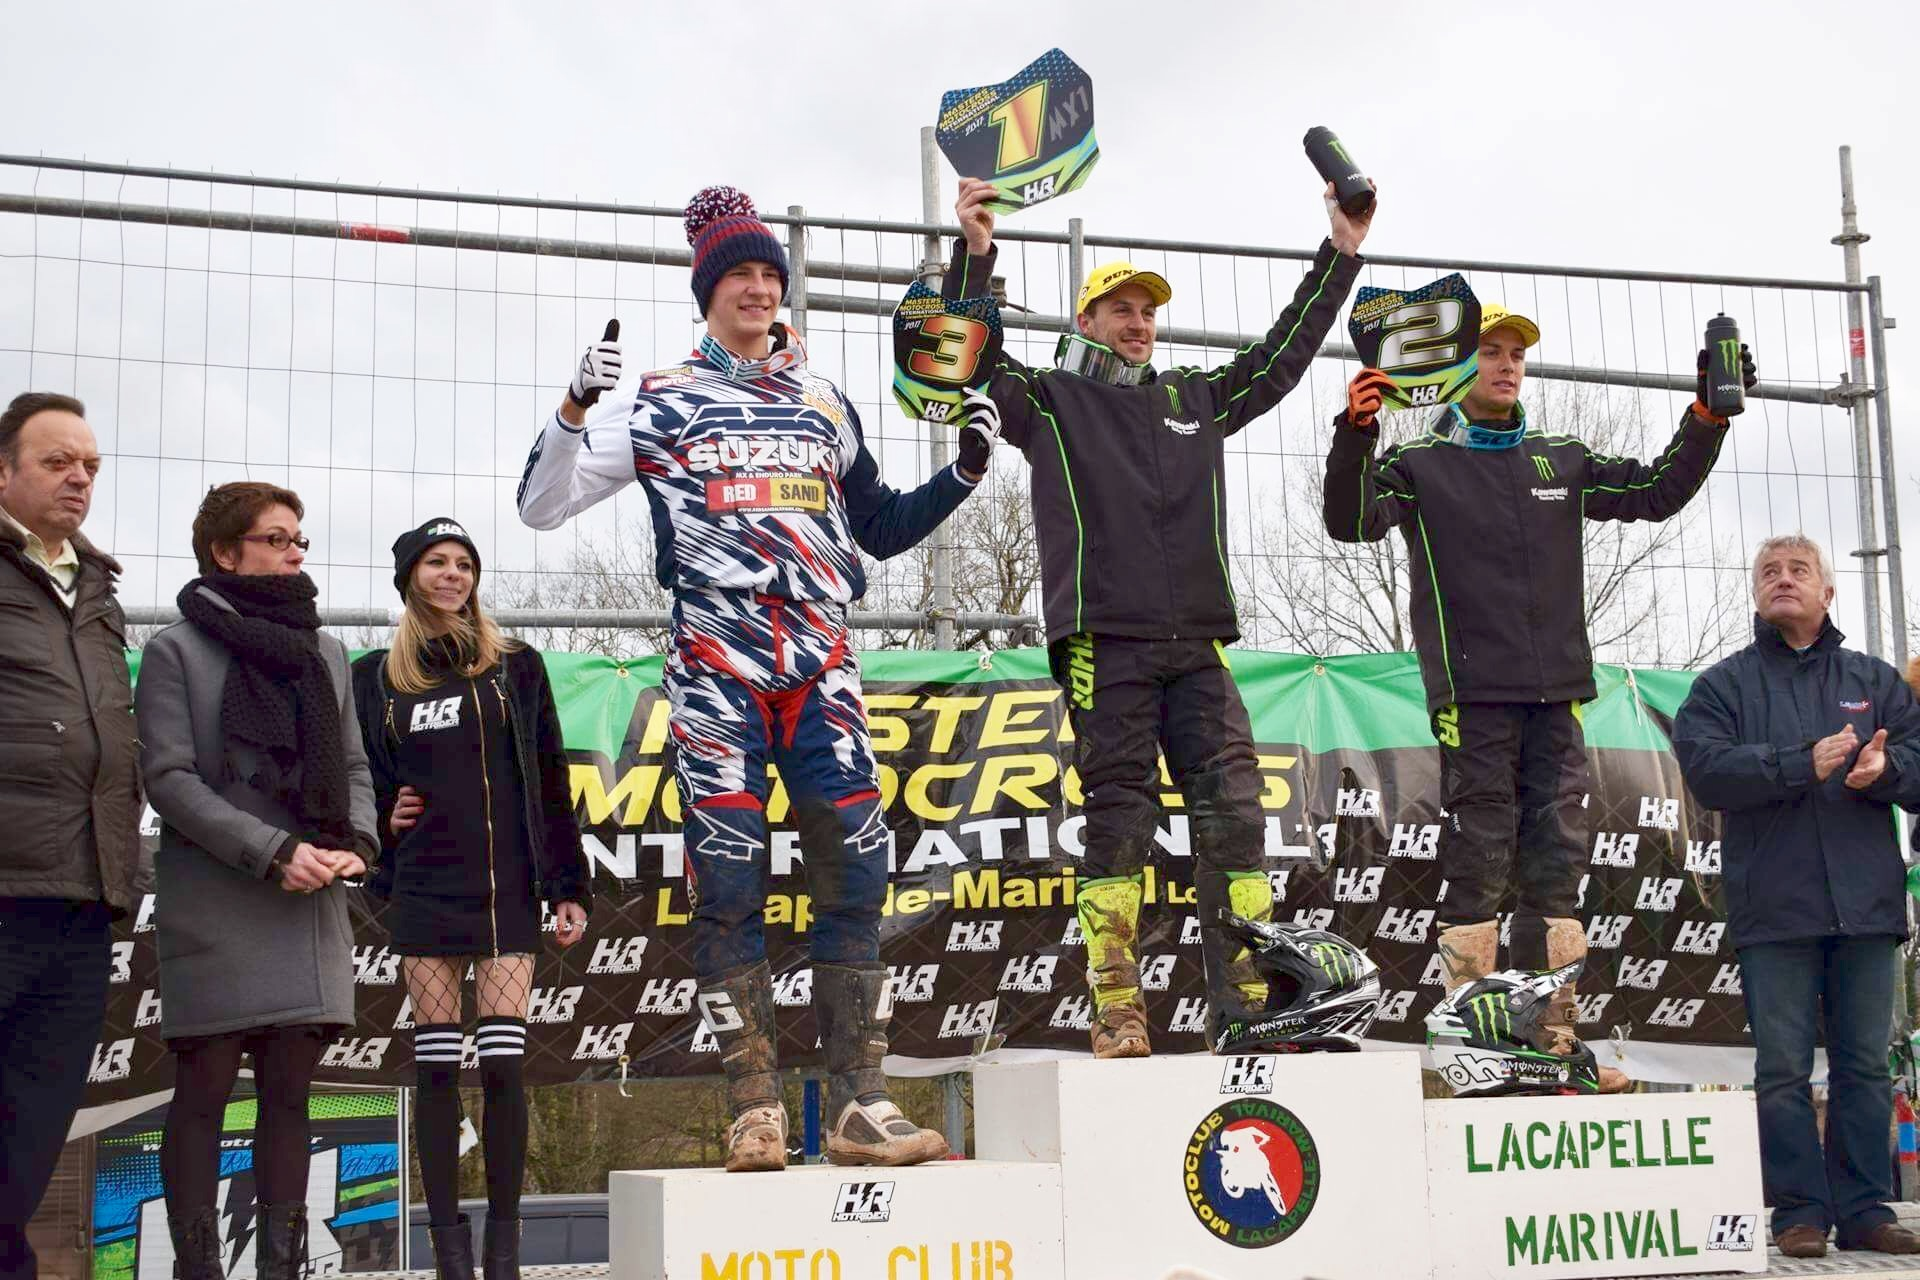 Podium MX1 Lacapelle